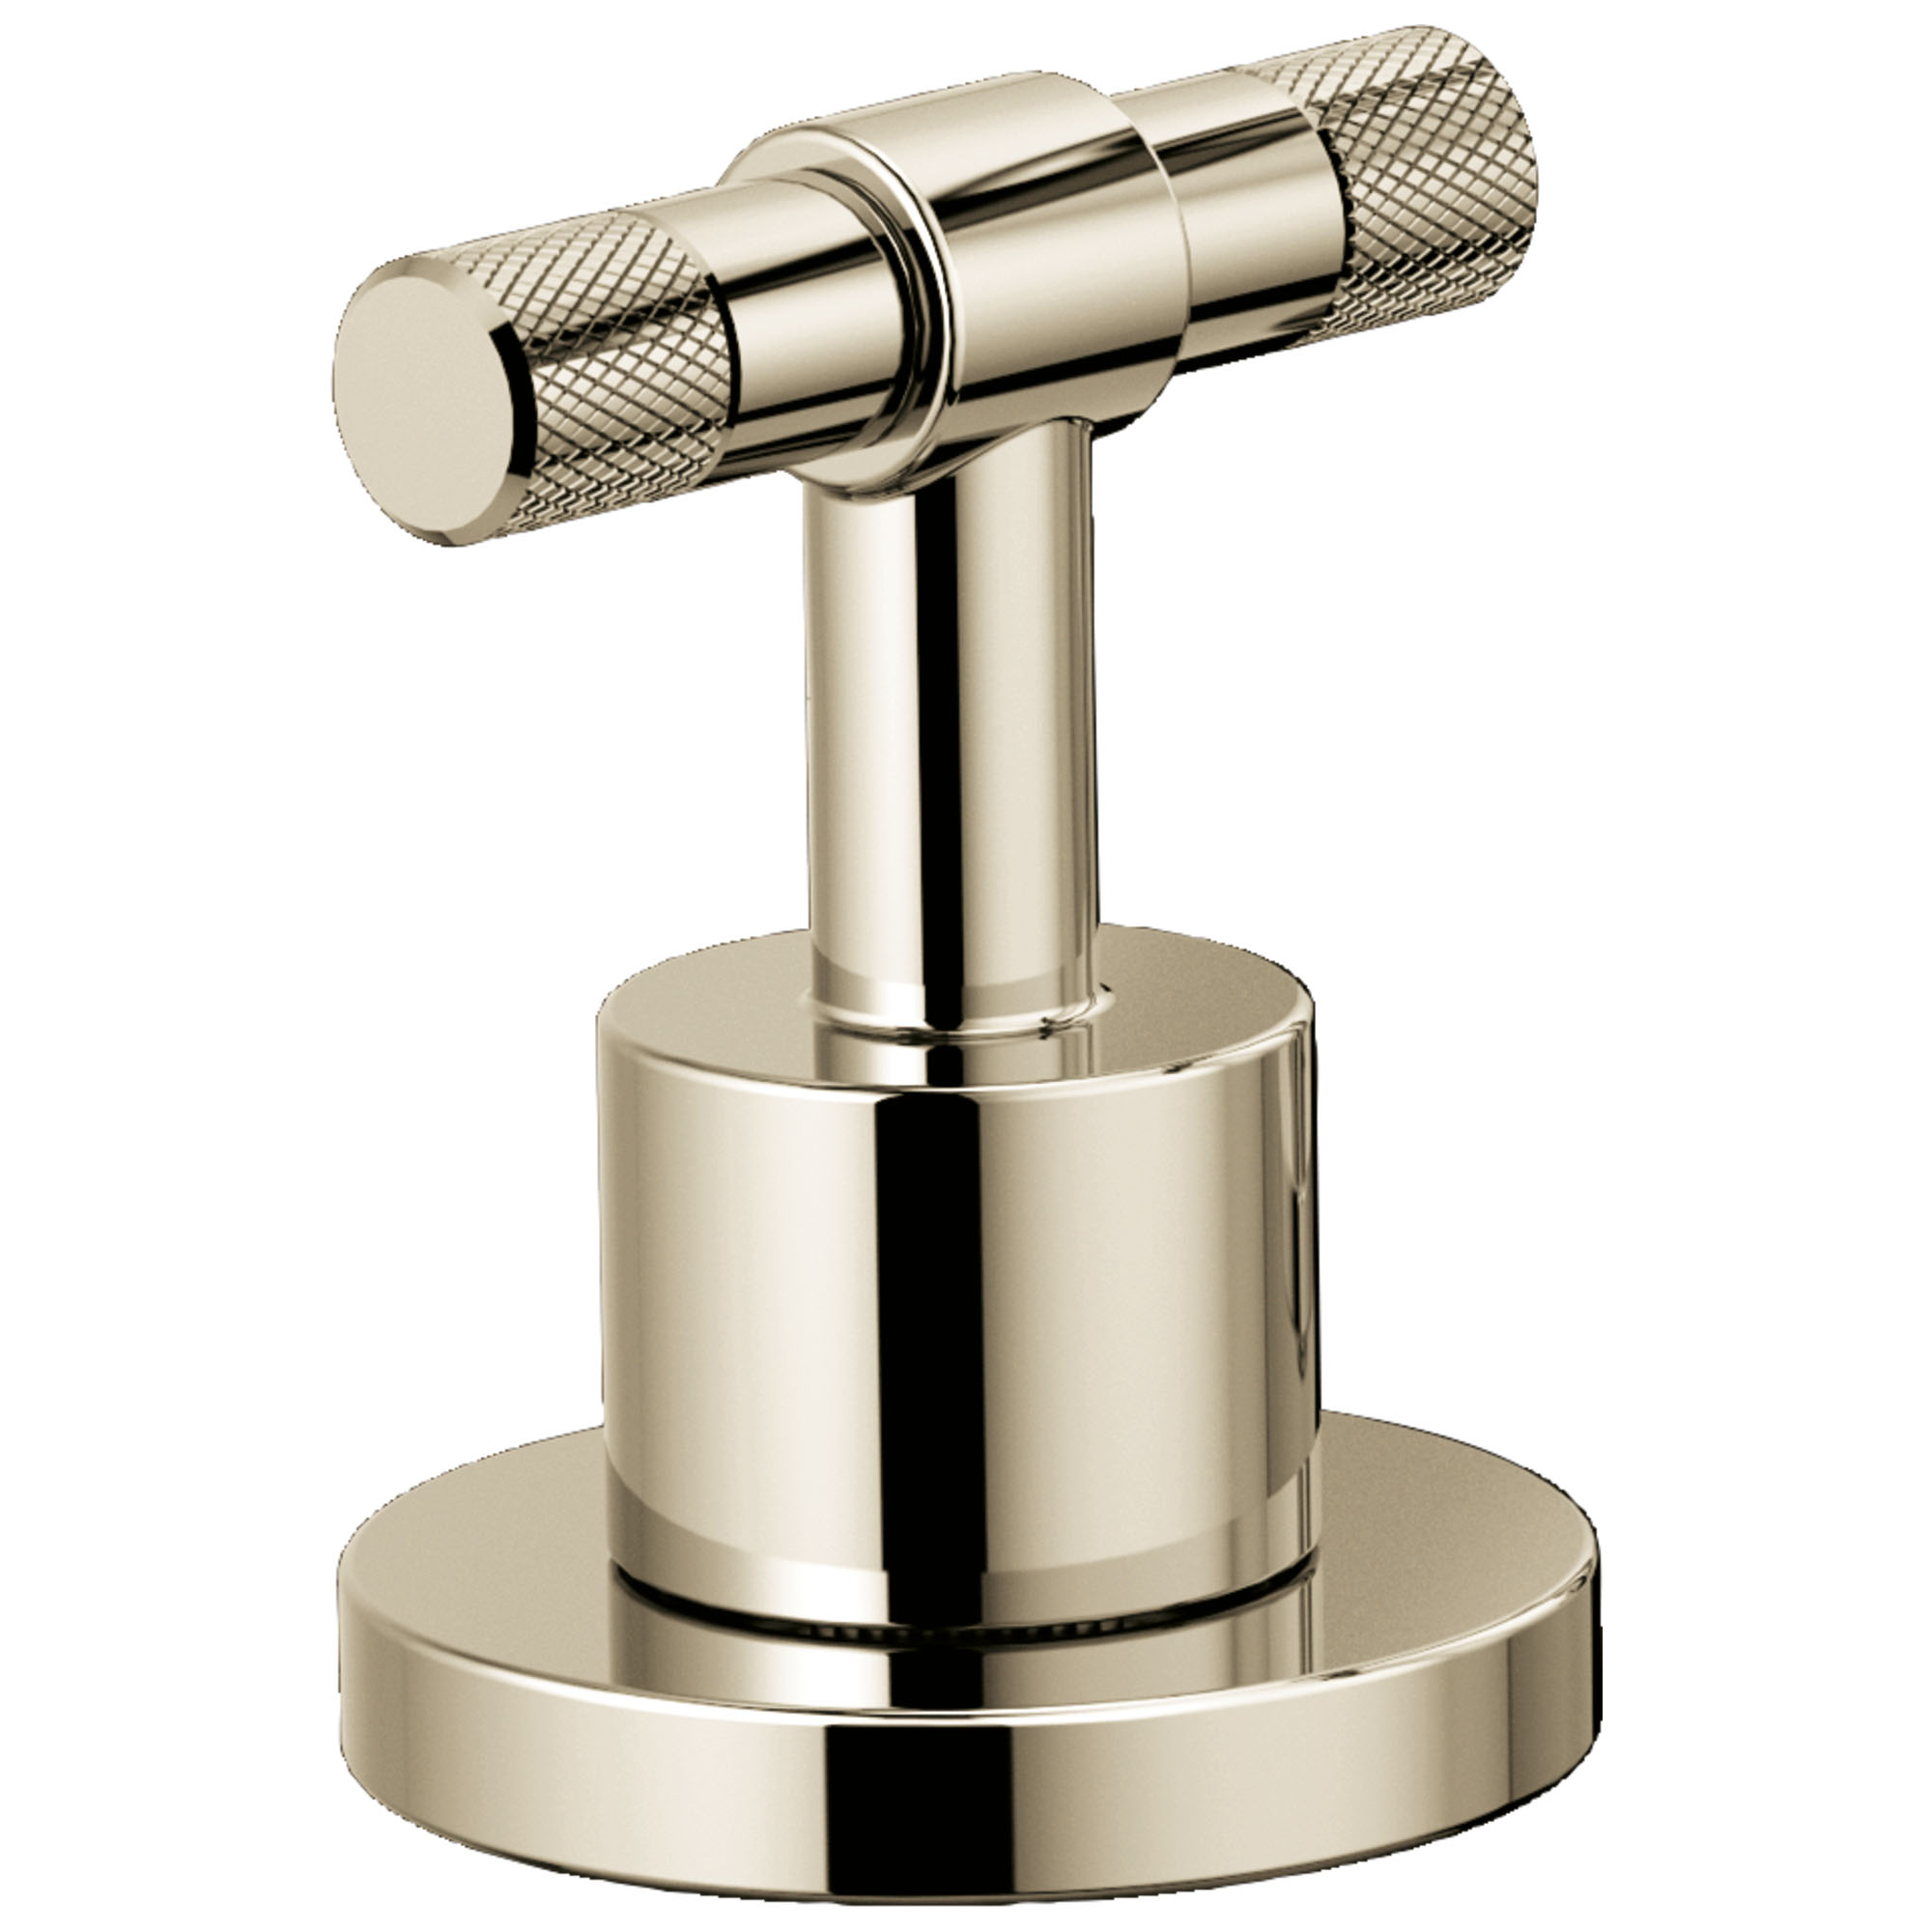 Brizo HL5333-PN Litze Widespread Handle Kit with T-lever - Polished Nickel